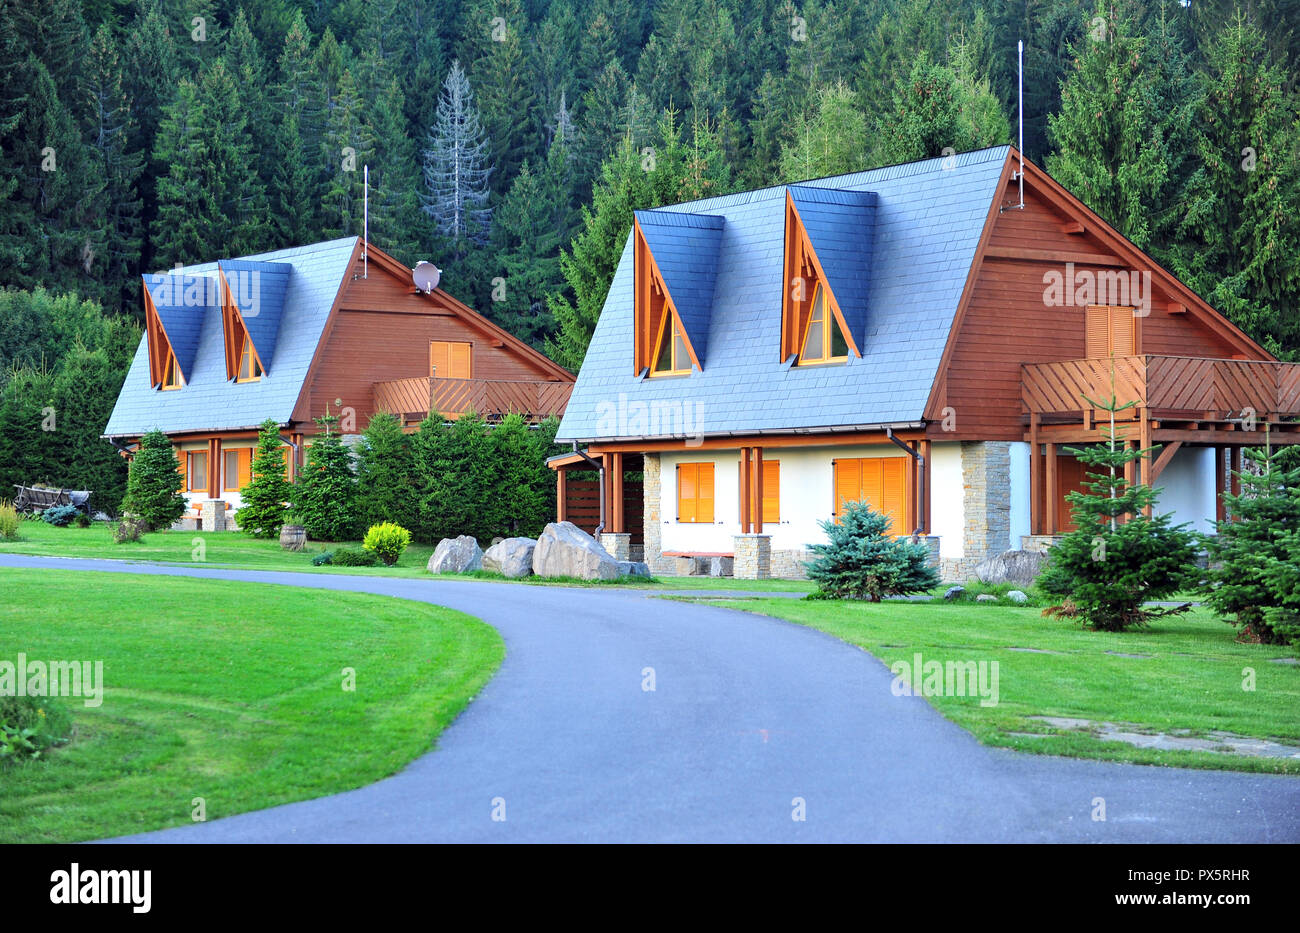 Two country houses in slovak village, Donovaly, Tatras - Stock Image